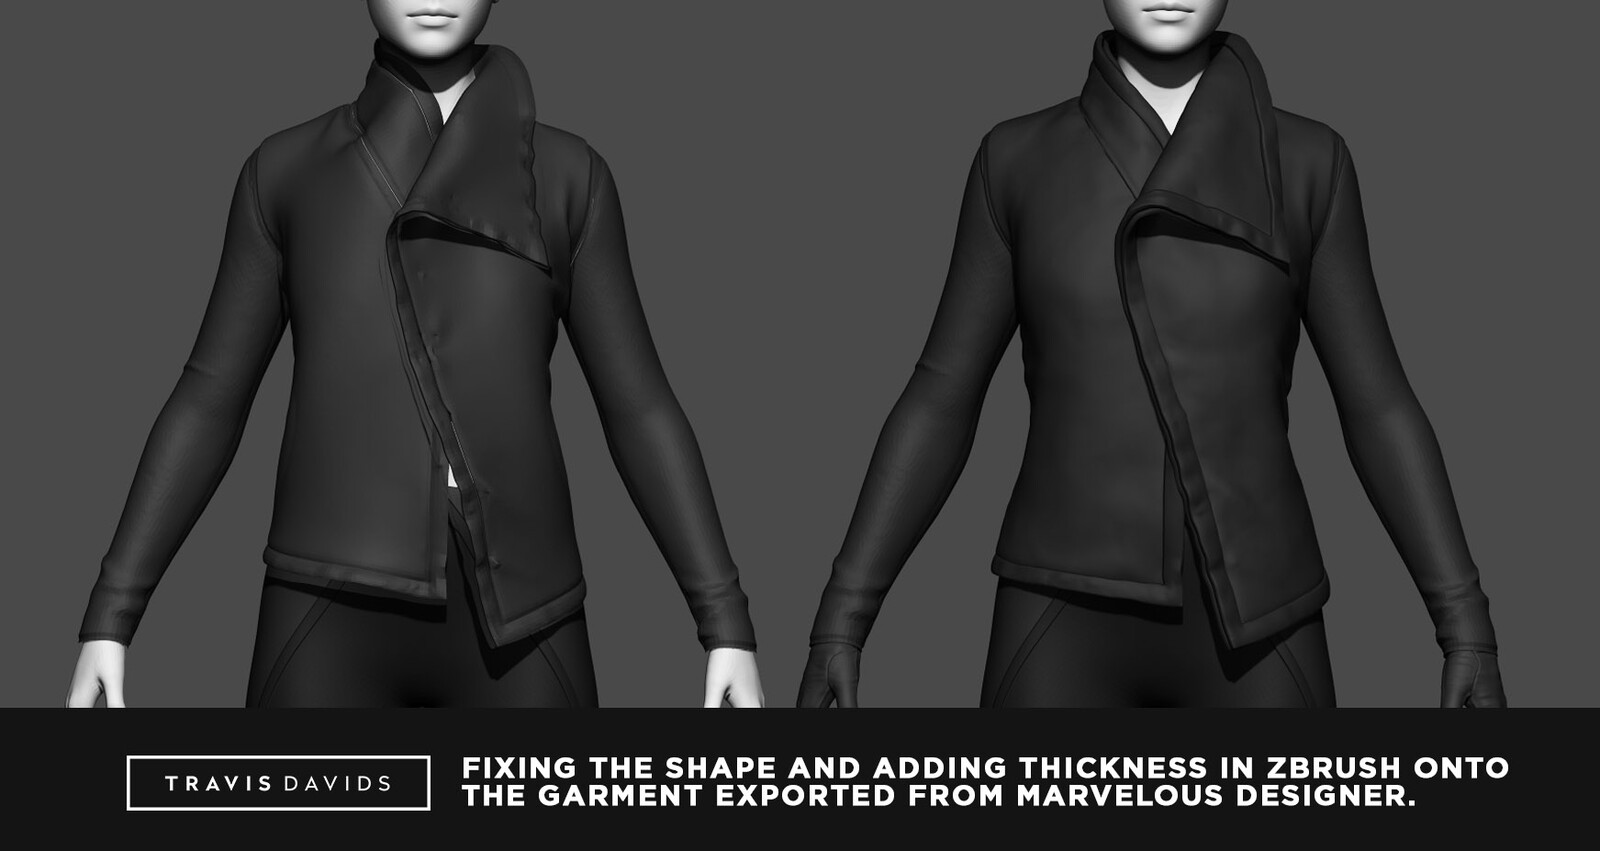 Zbrush plays a very important role in finalizing garments and fixing shapes that would be too difficult to simulate with MD. I also add thickness to my garment in Zbrush instead of MD.